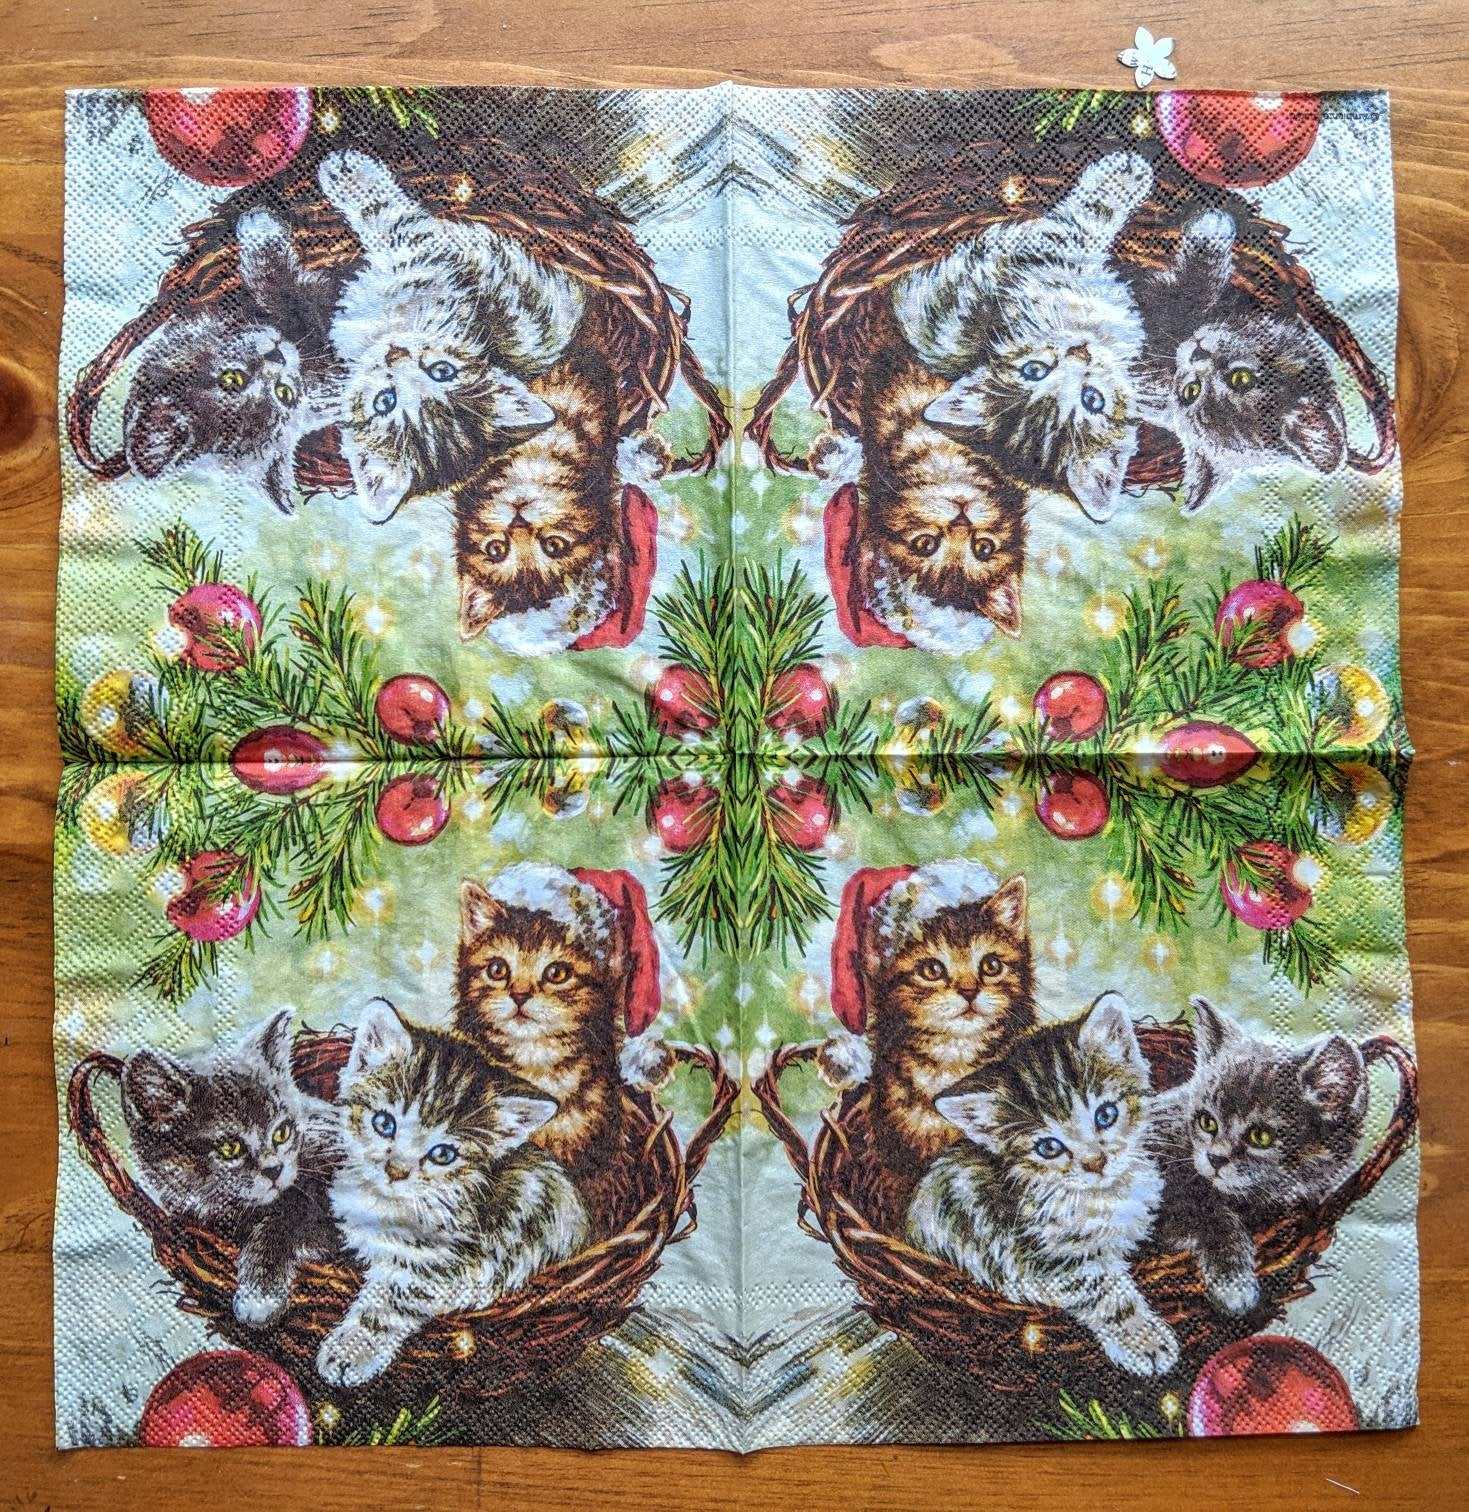 Cats in Basket - Ninnys Napkins